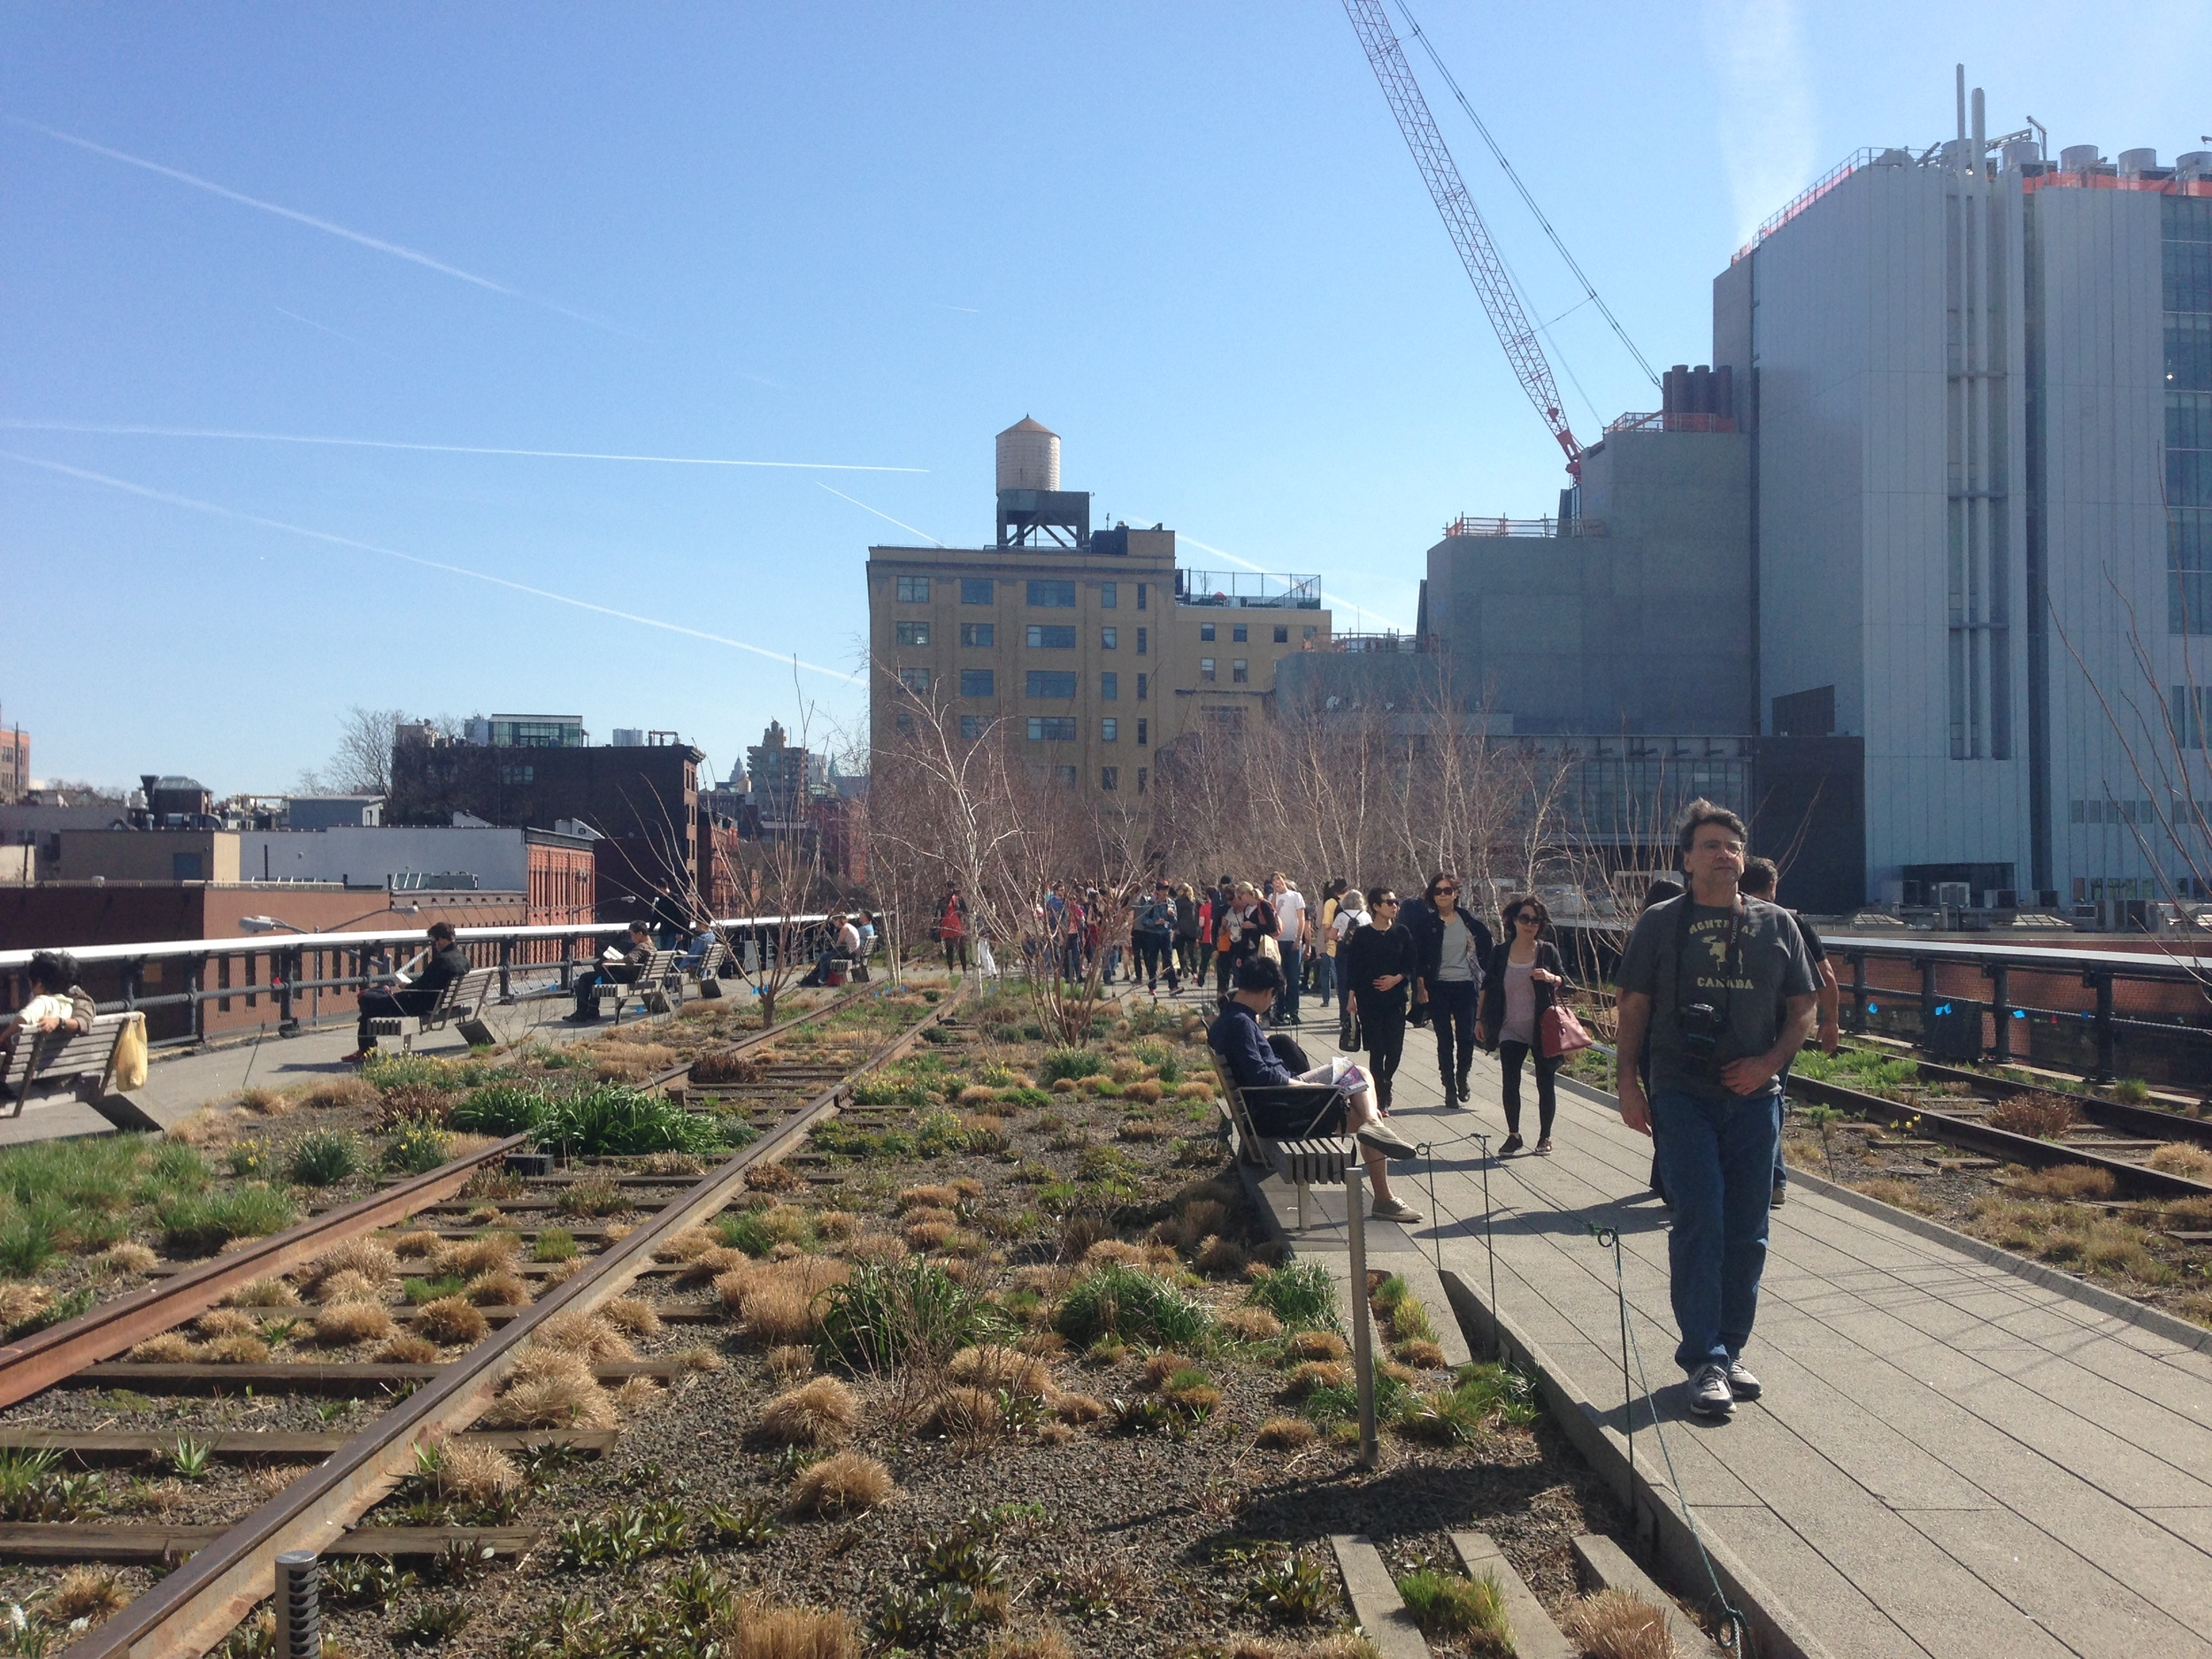 For some tips of places to visit along the High Line please visit this  link.